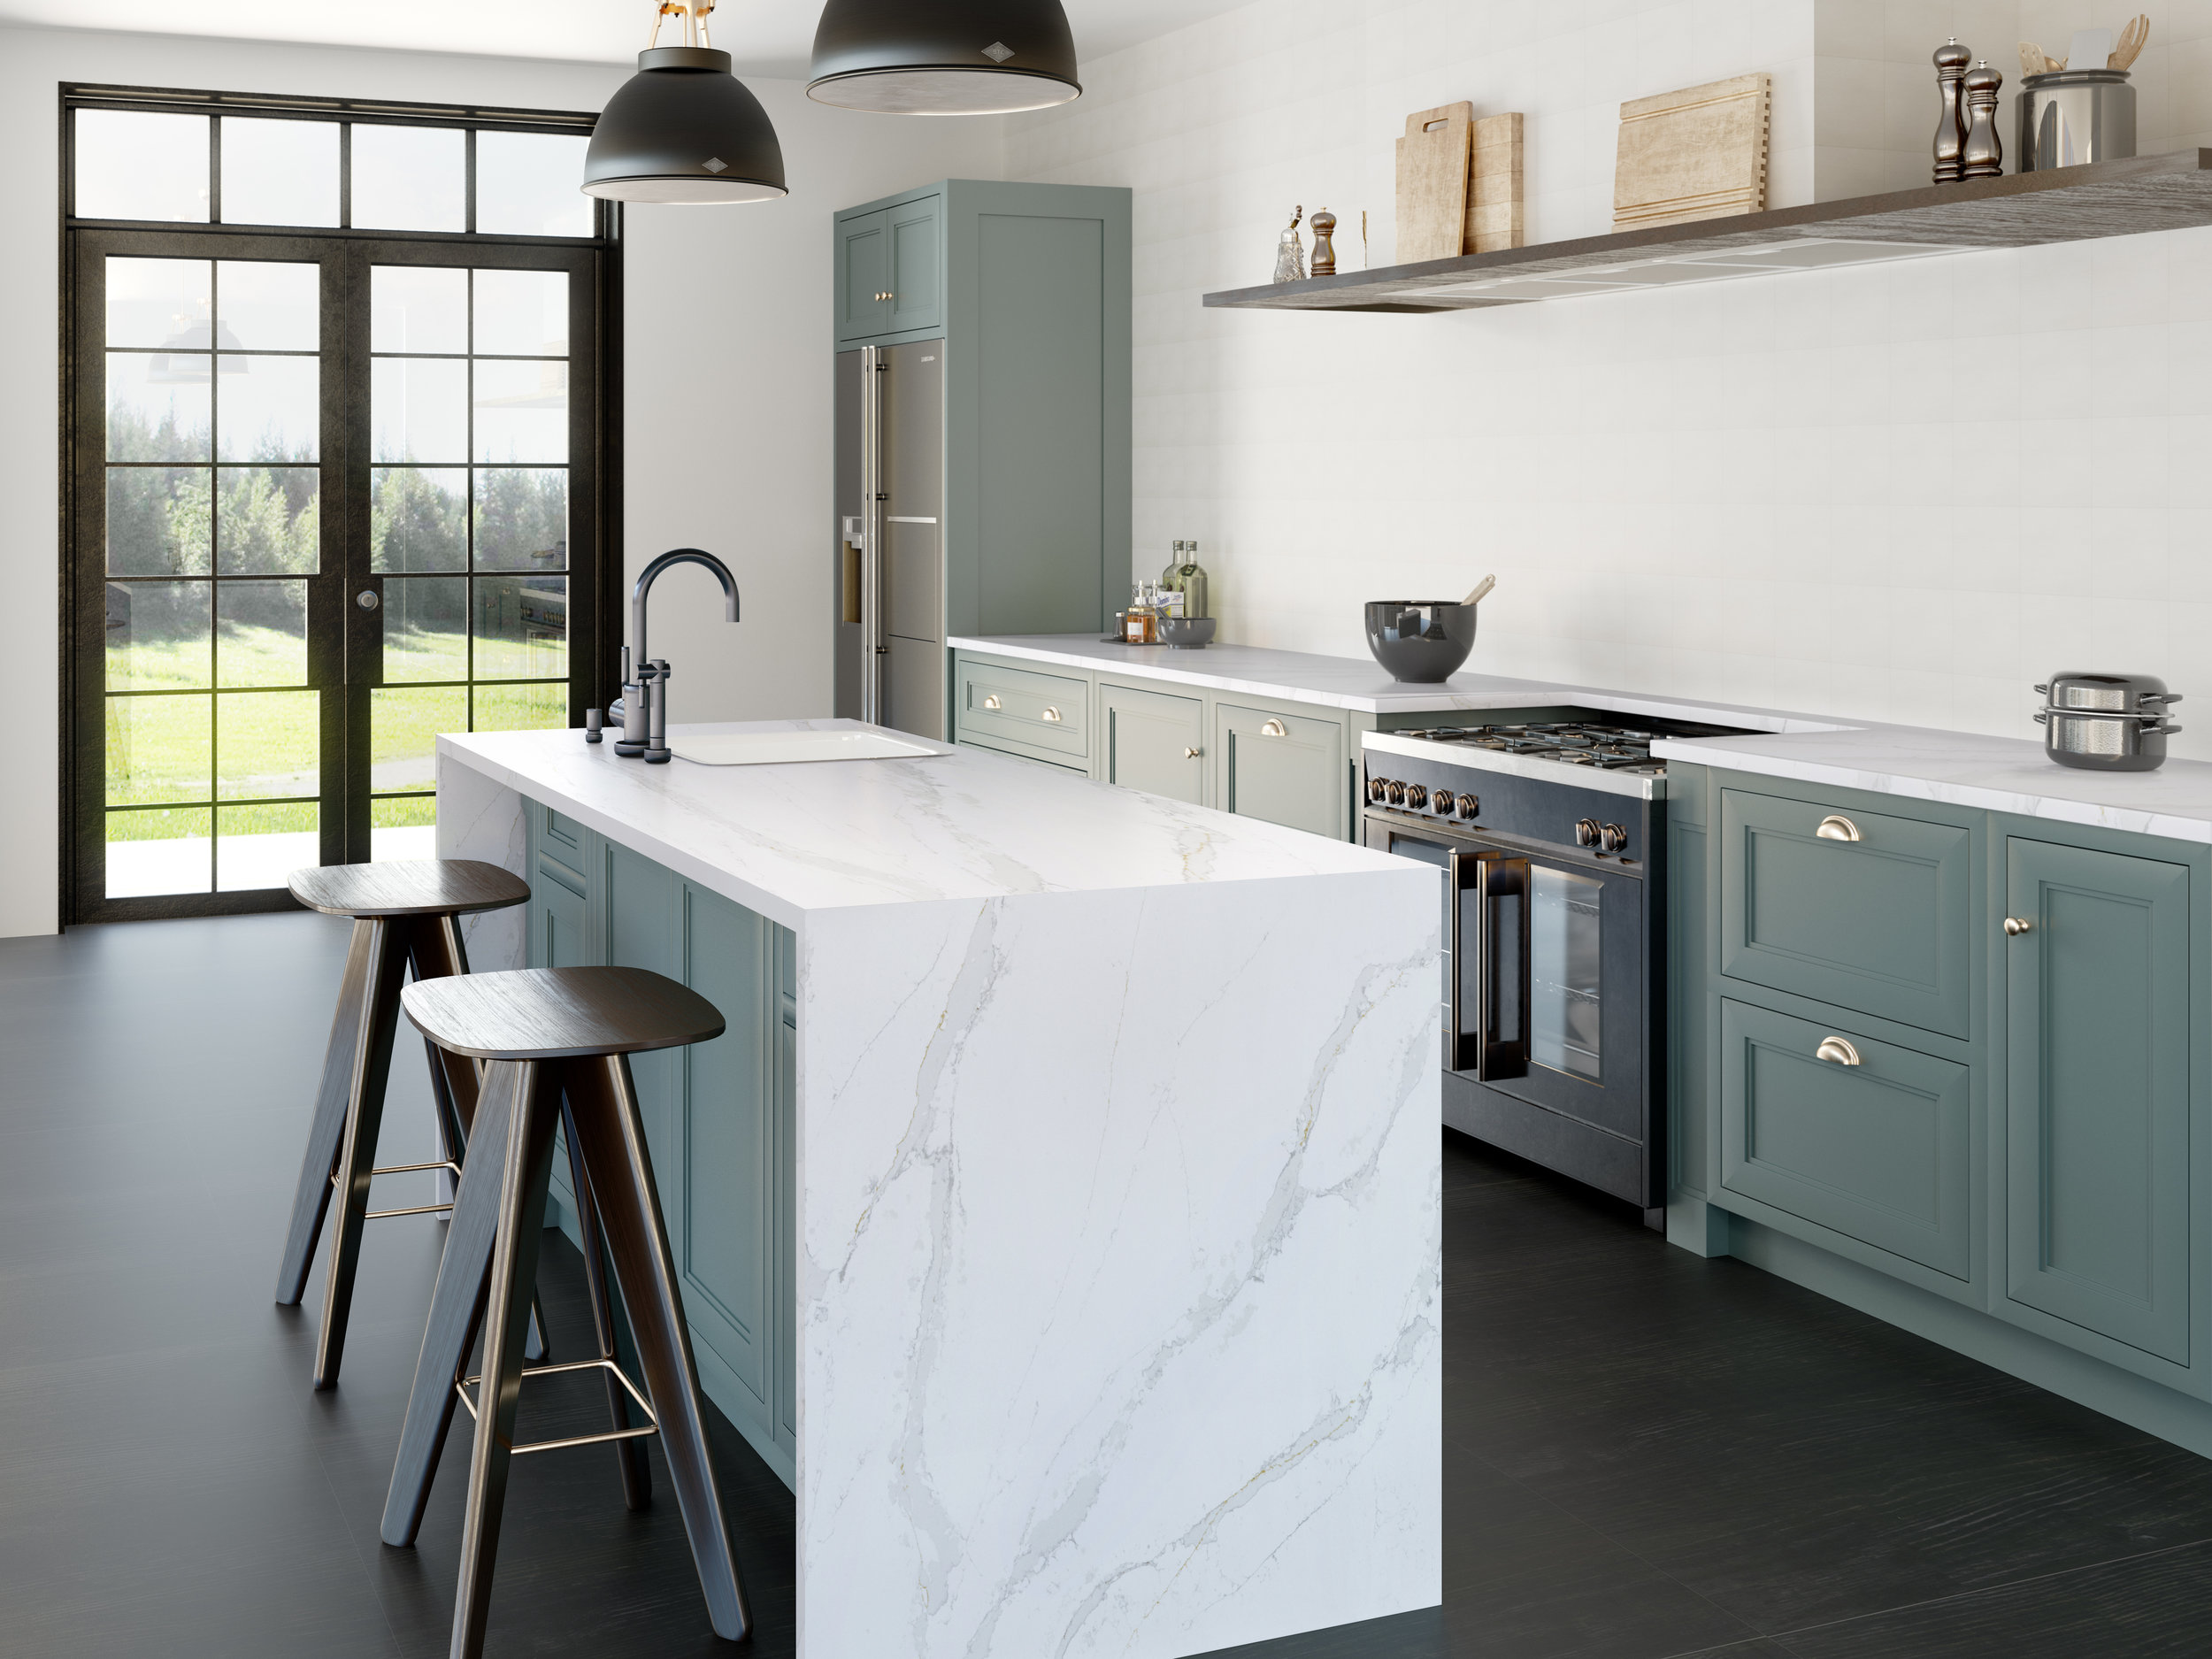 Silestone Kitchen - Eternal Calacatta Gold.jpg